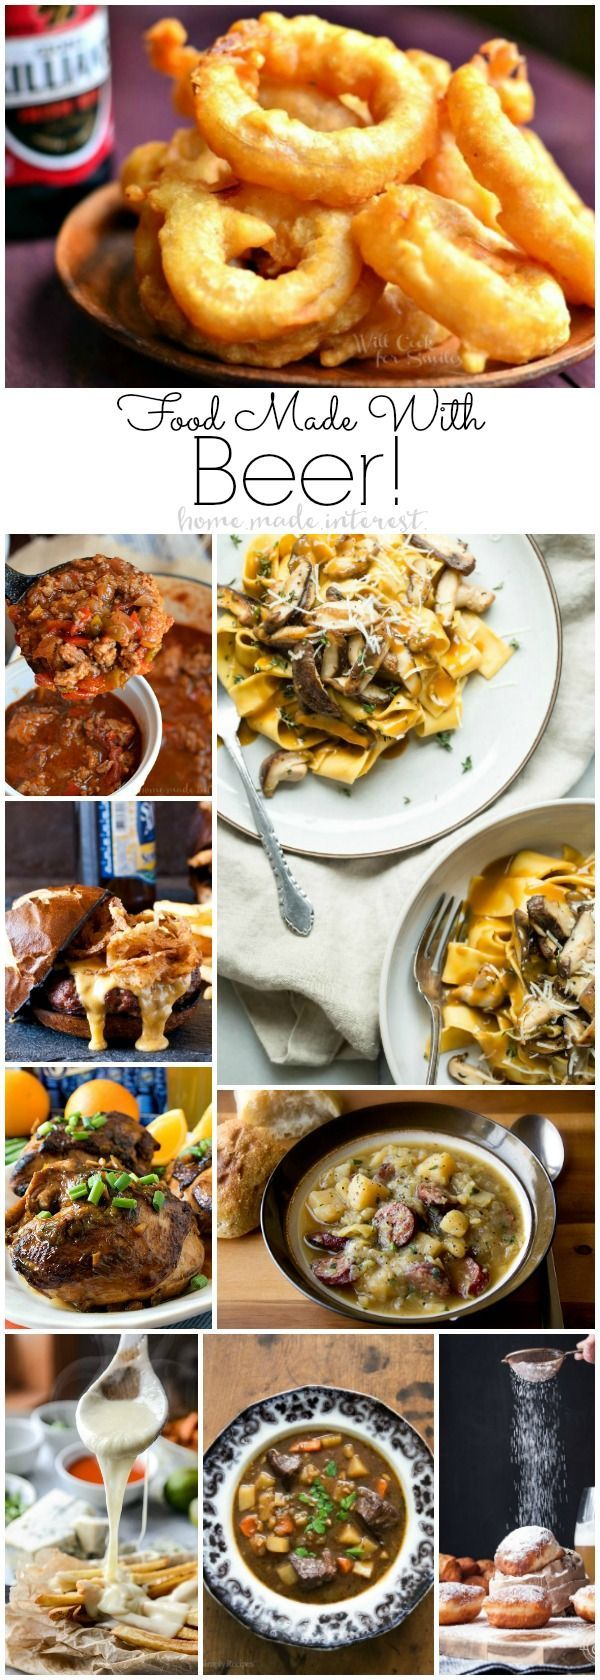 Recipes made with beer are great game day food, Oktoberfest parties or cozy…